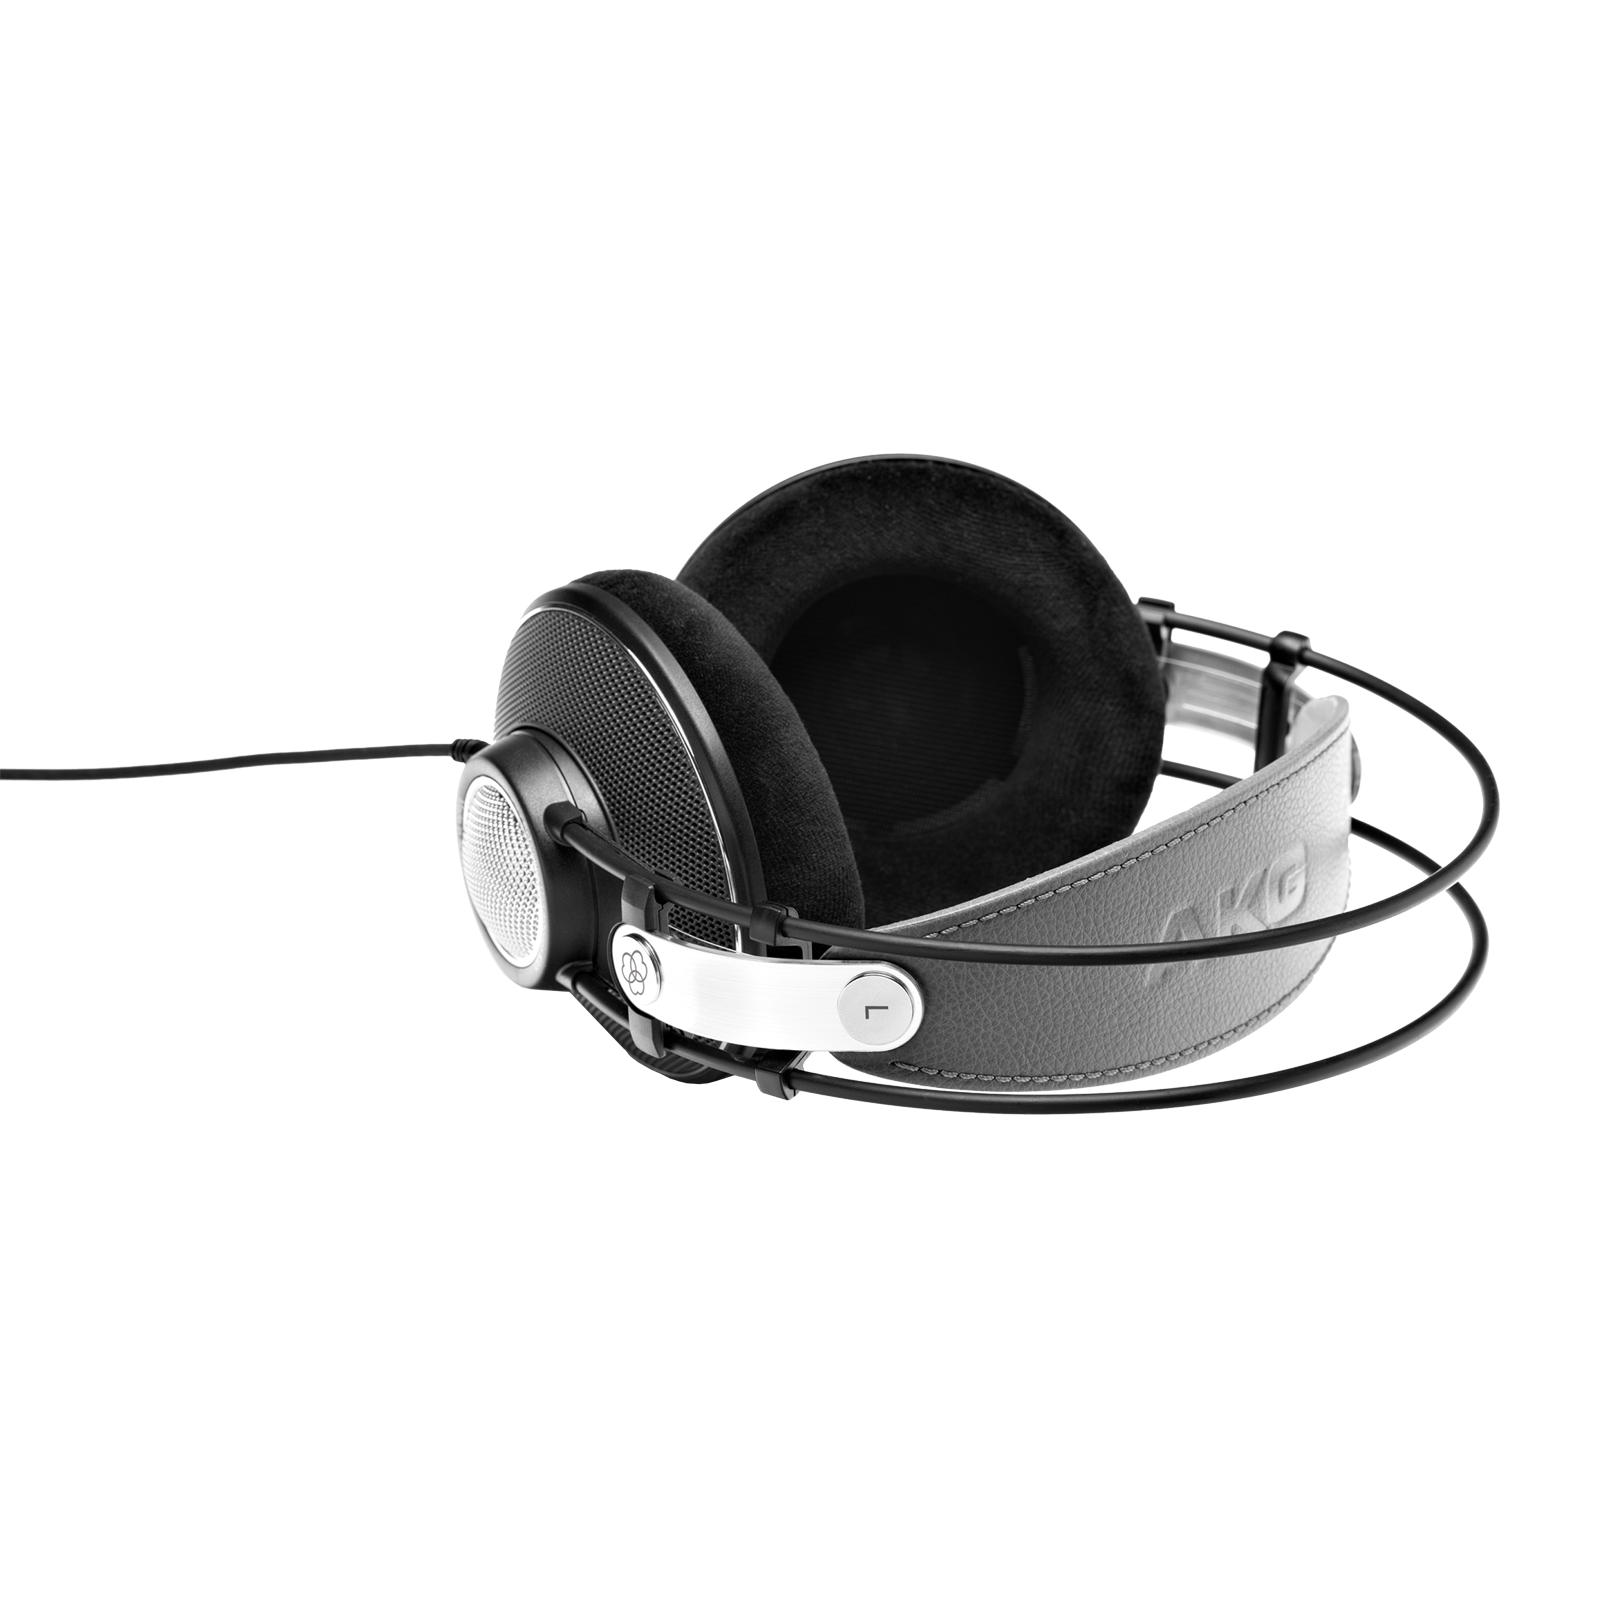 K612 PRO - Black - Reference studio headphones - Detailshot 1